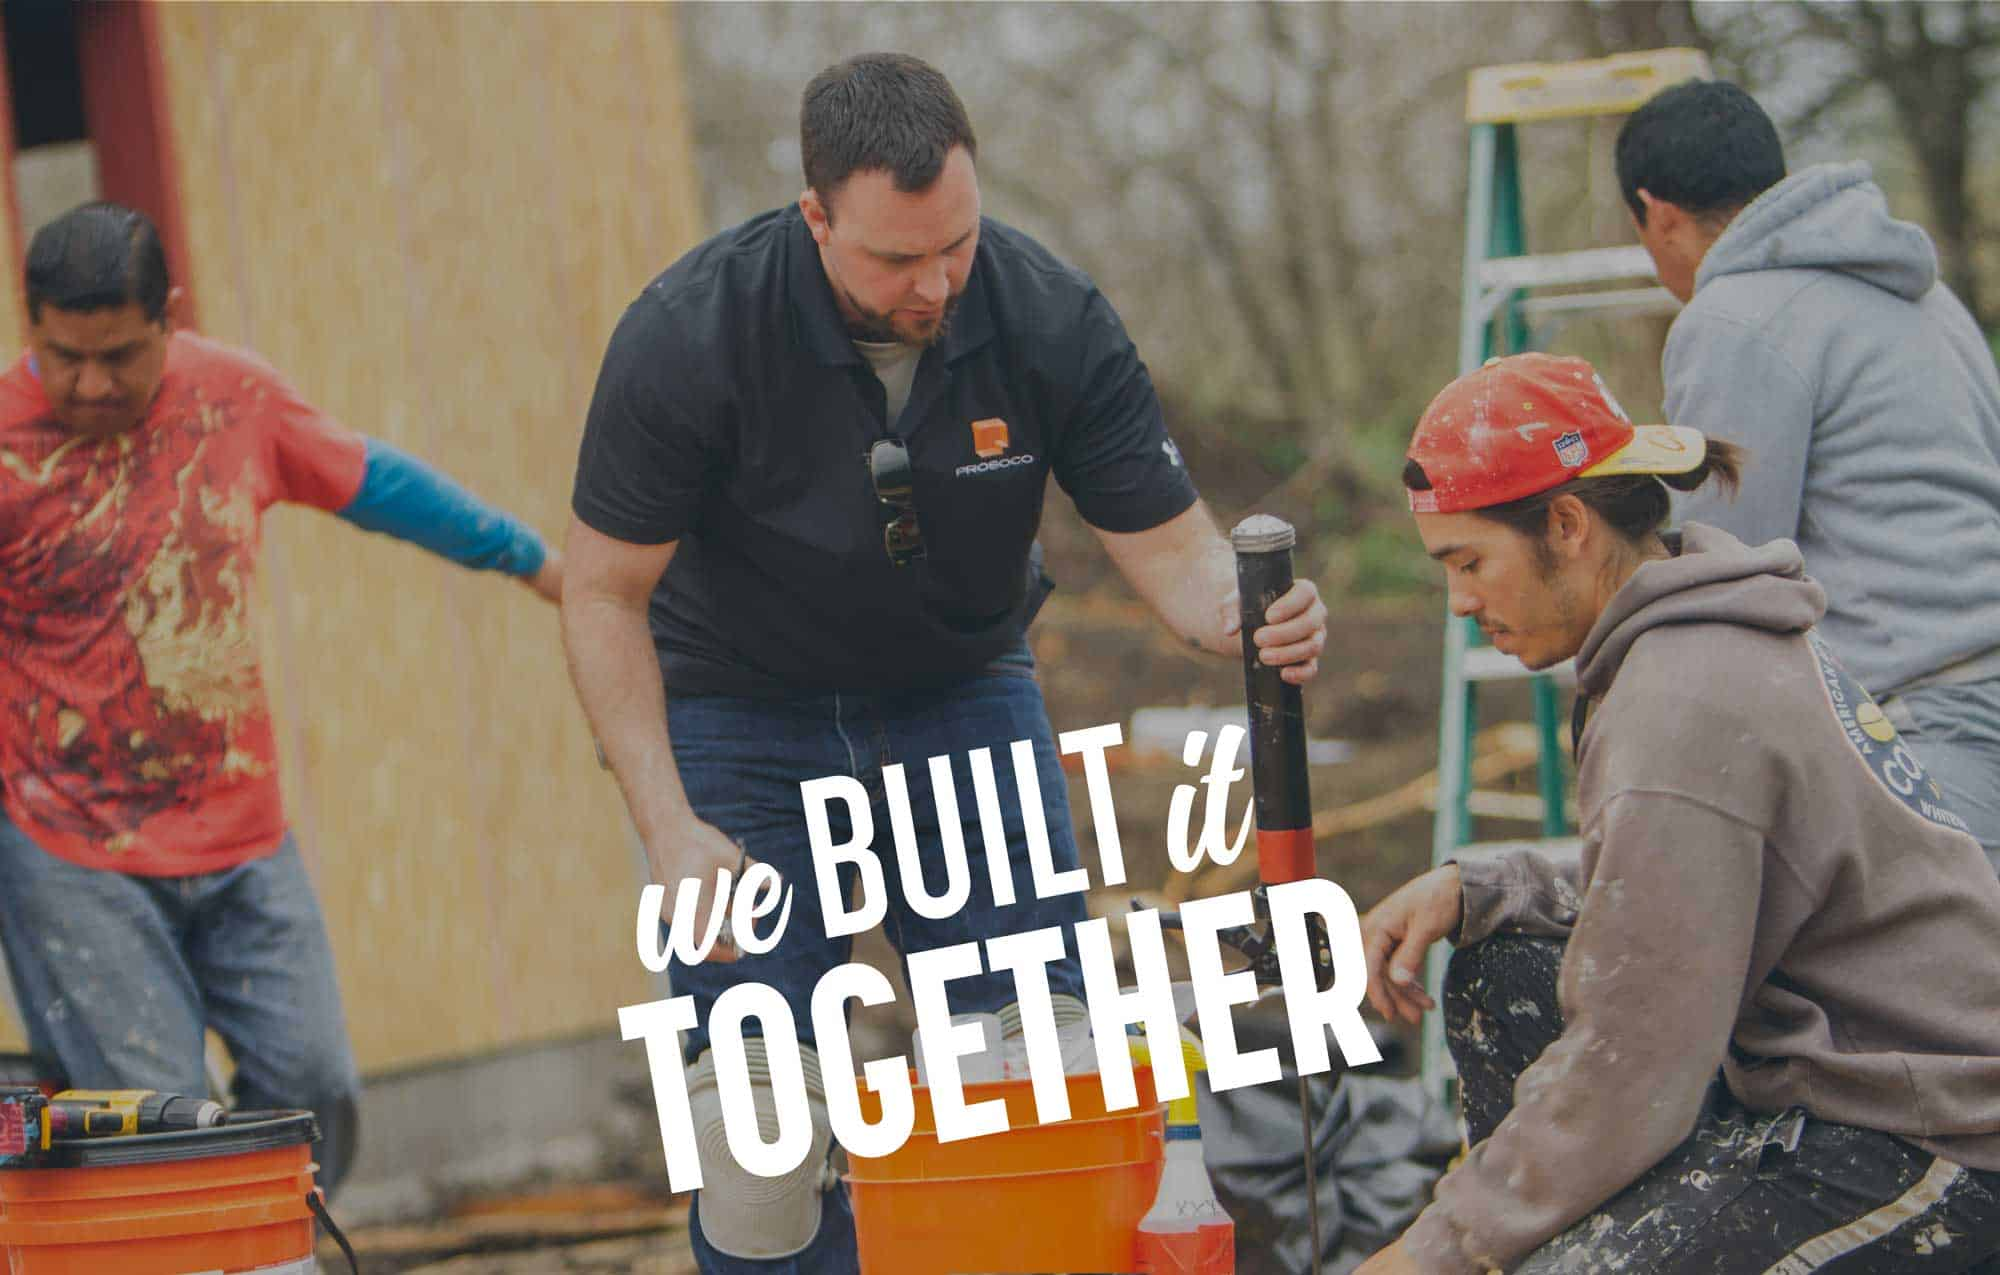 We Built It Together campaign